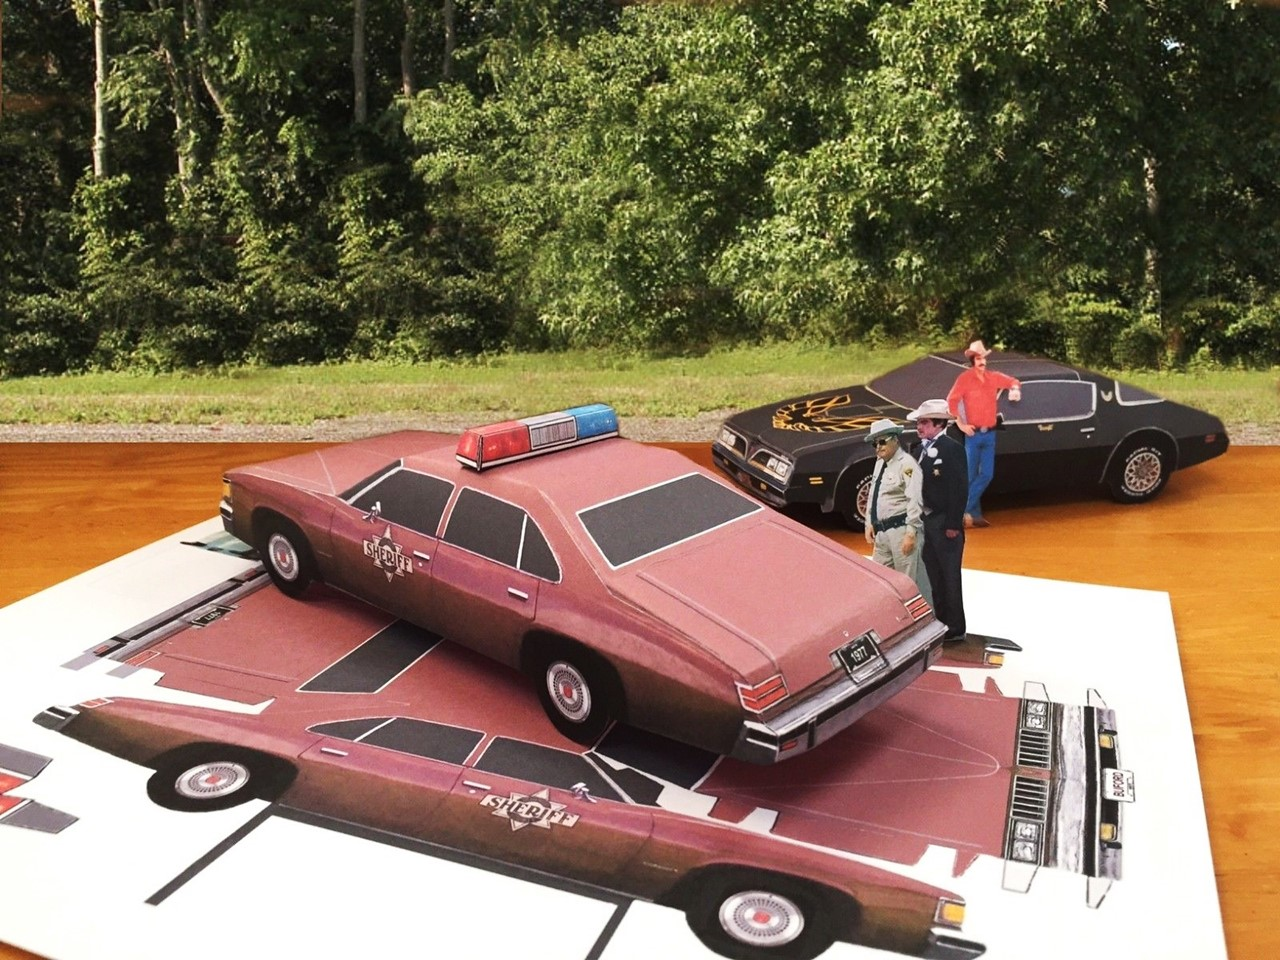 pontiac-lemans-buford-t-justice-smokey-the-bandit-car